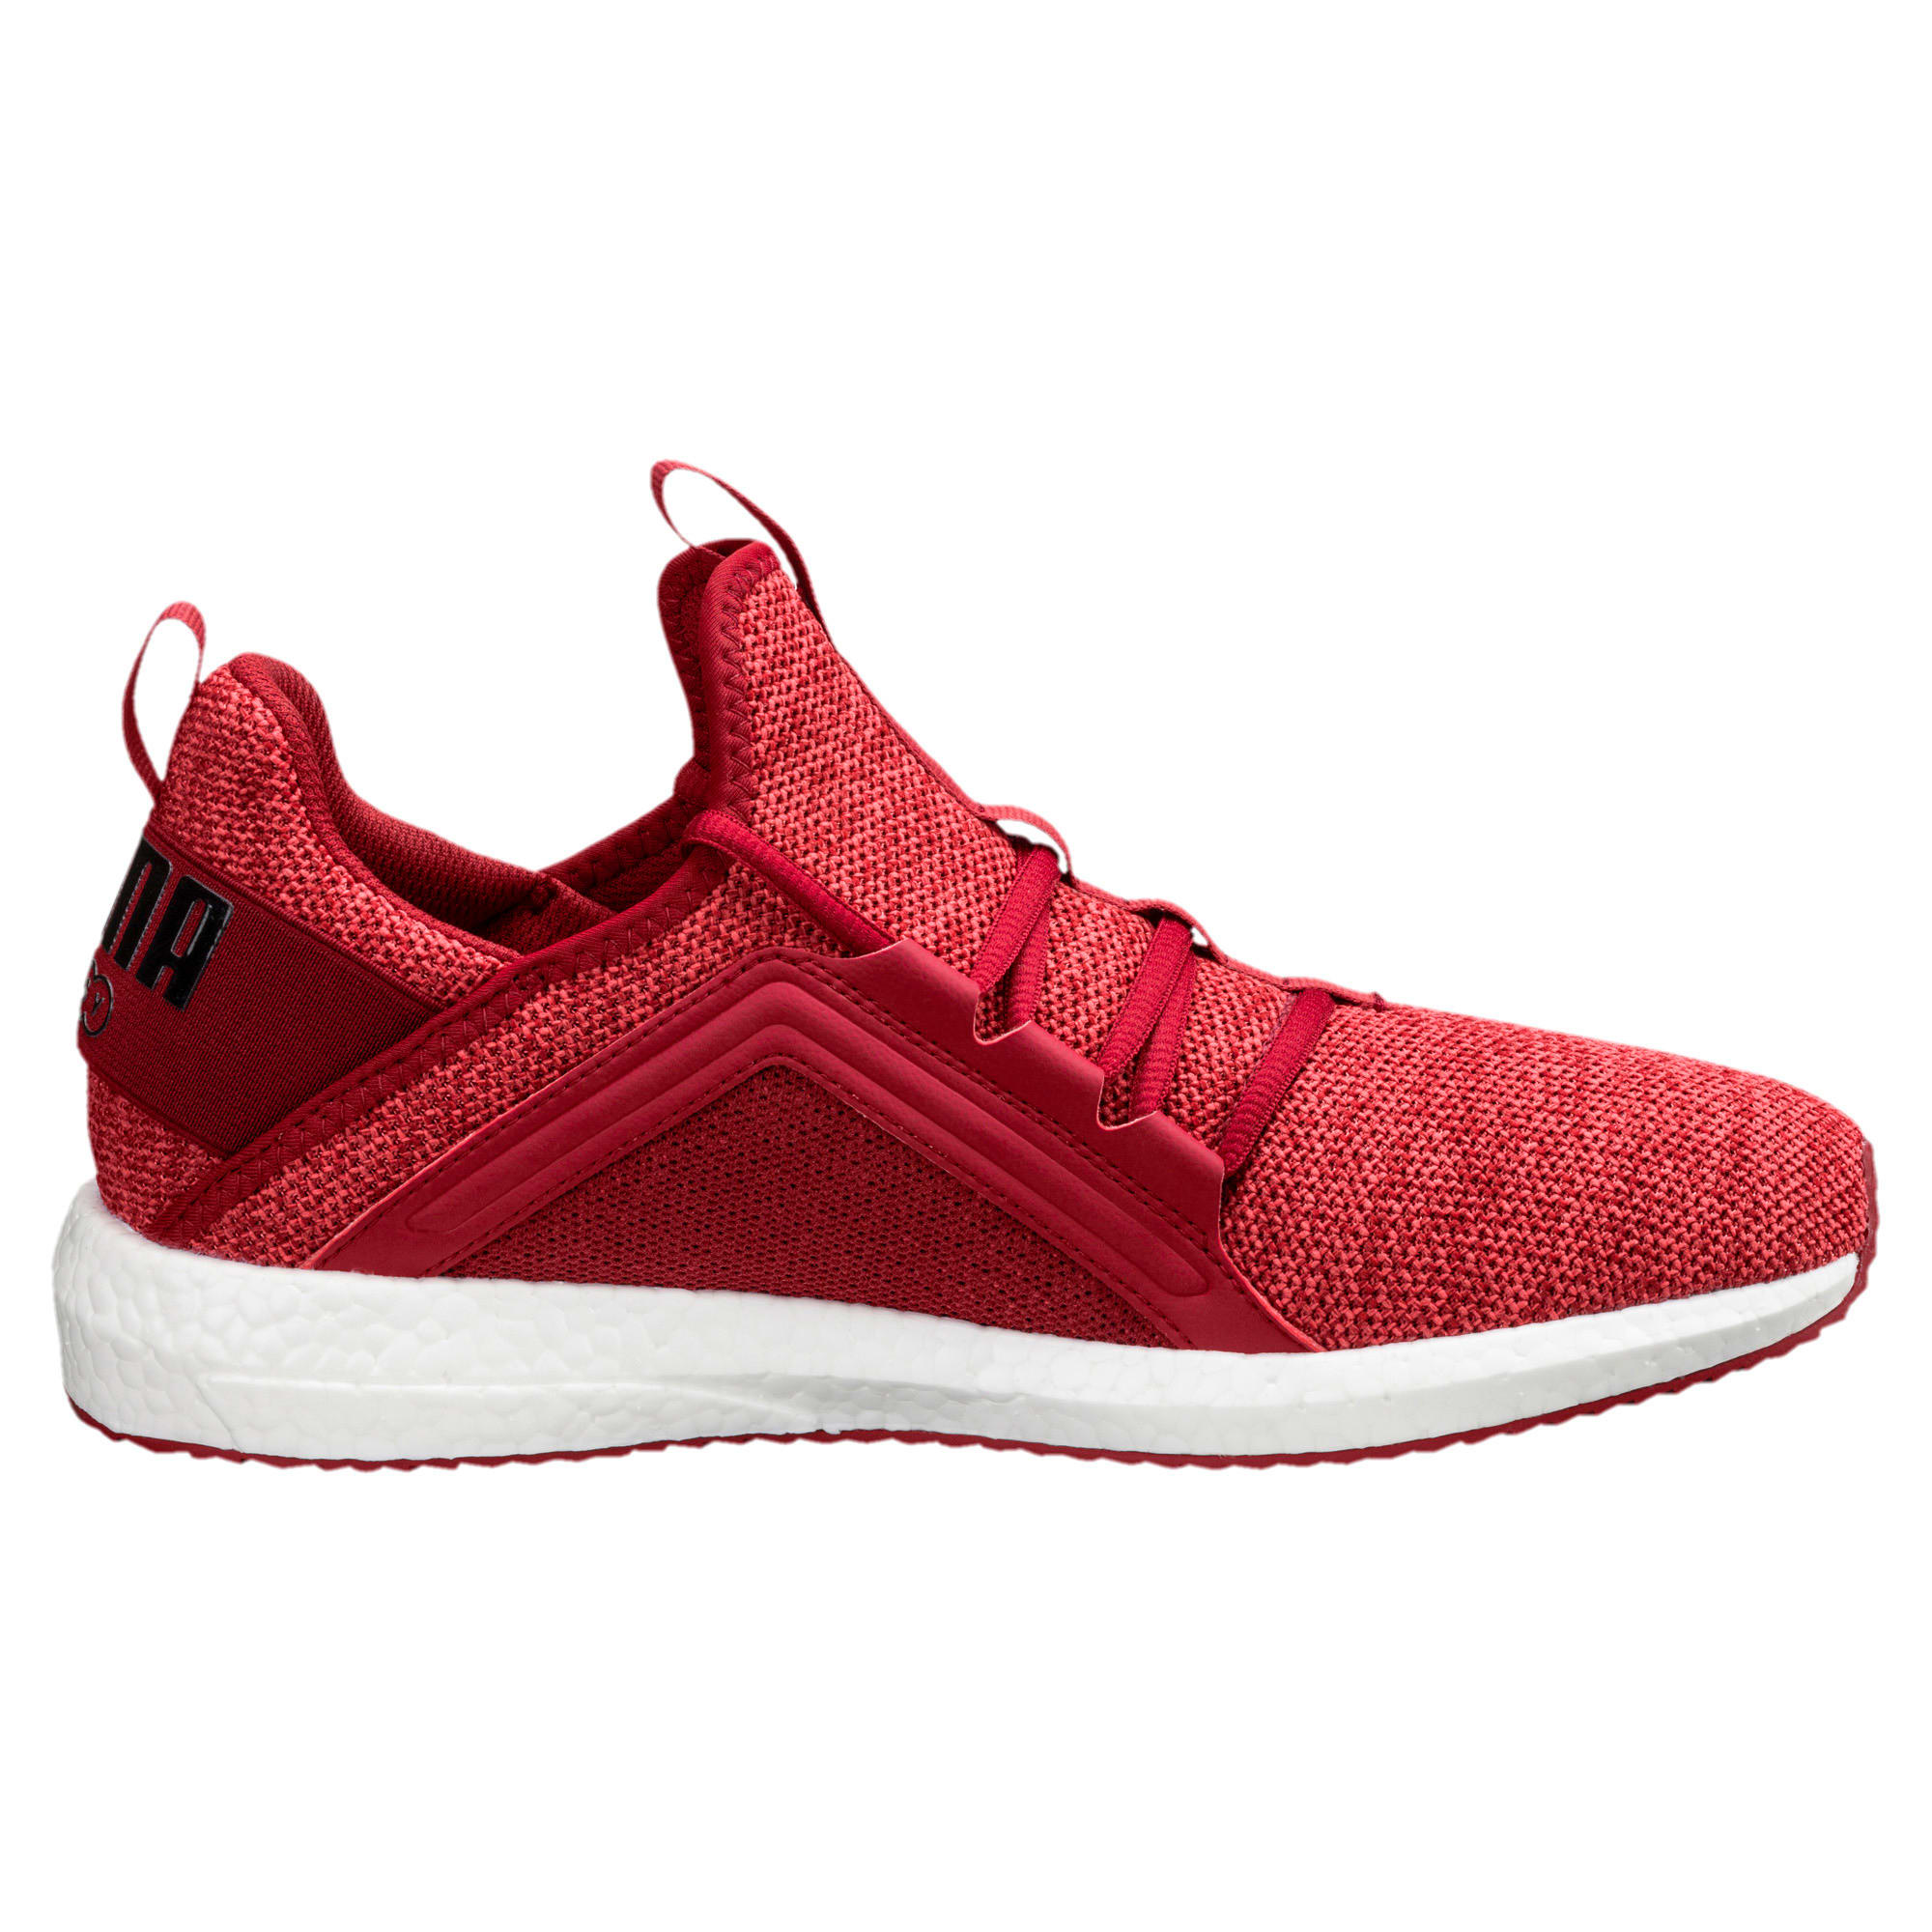 Thumbnail 3 of Mega NRGY Knit Men's Running Shoes, Red Dahlia-Flame Scarlet-Blk, medium